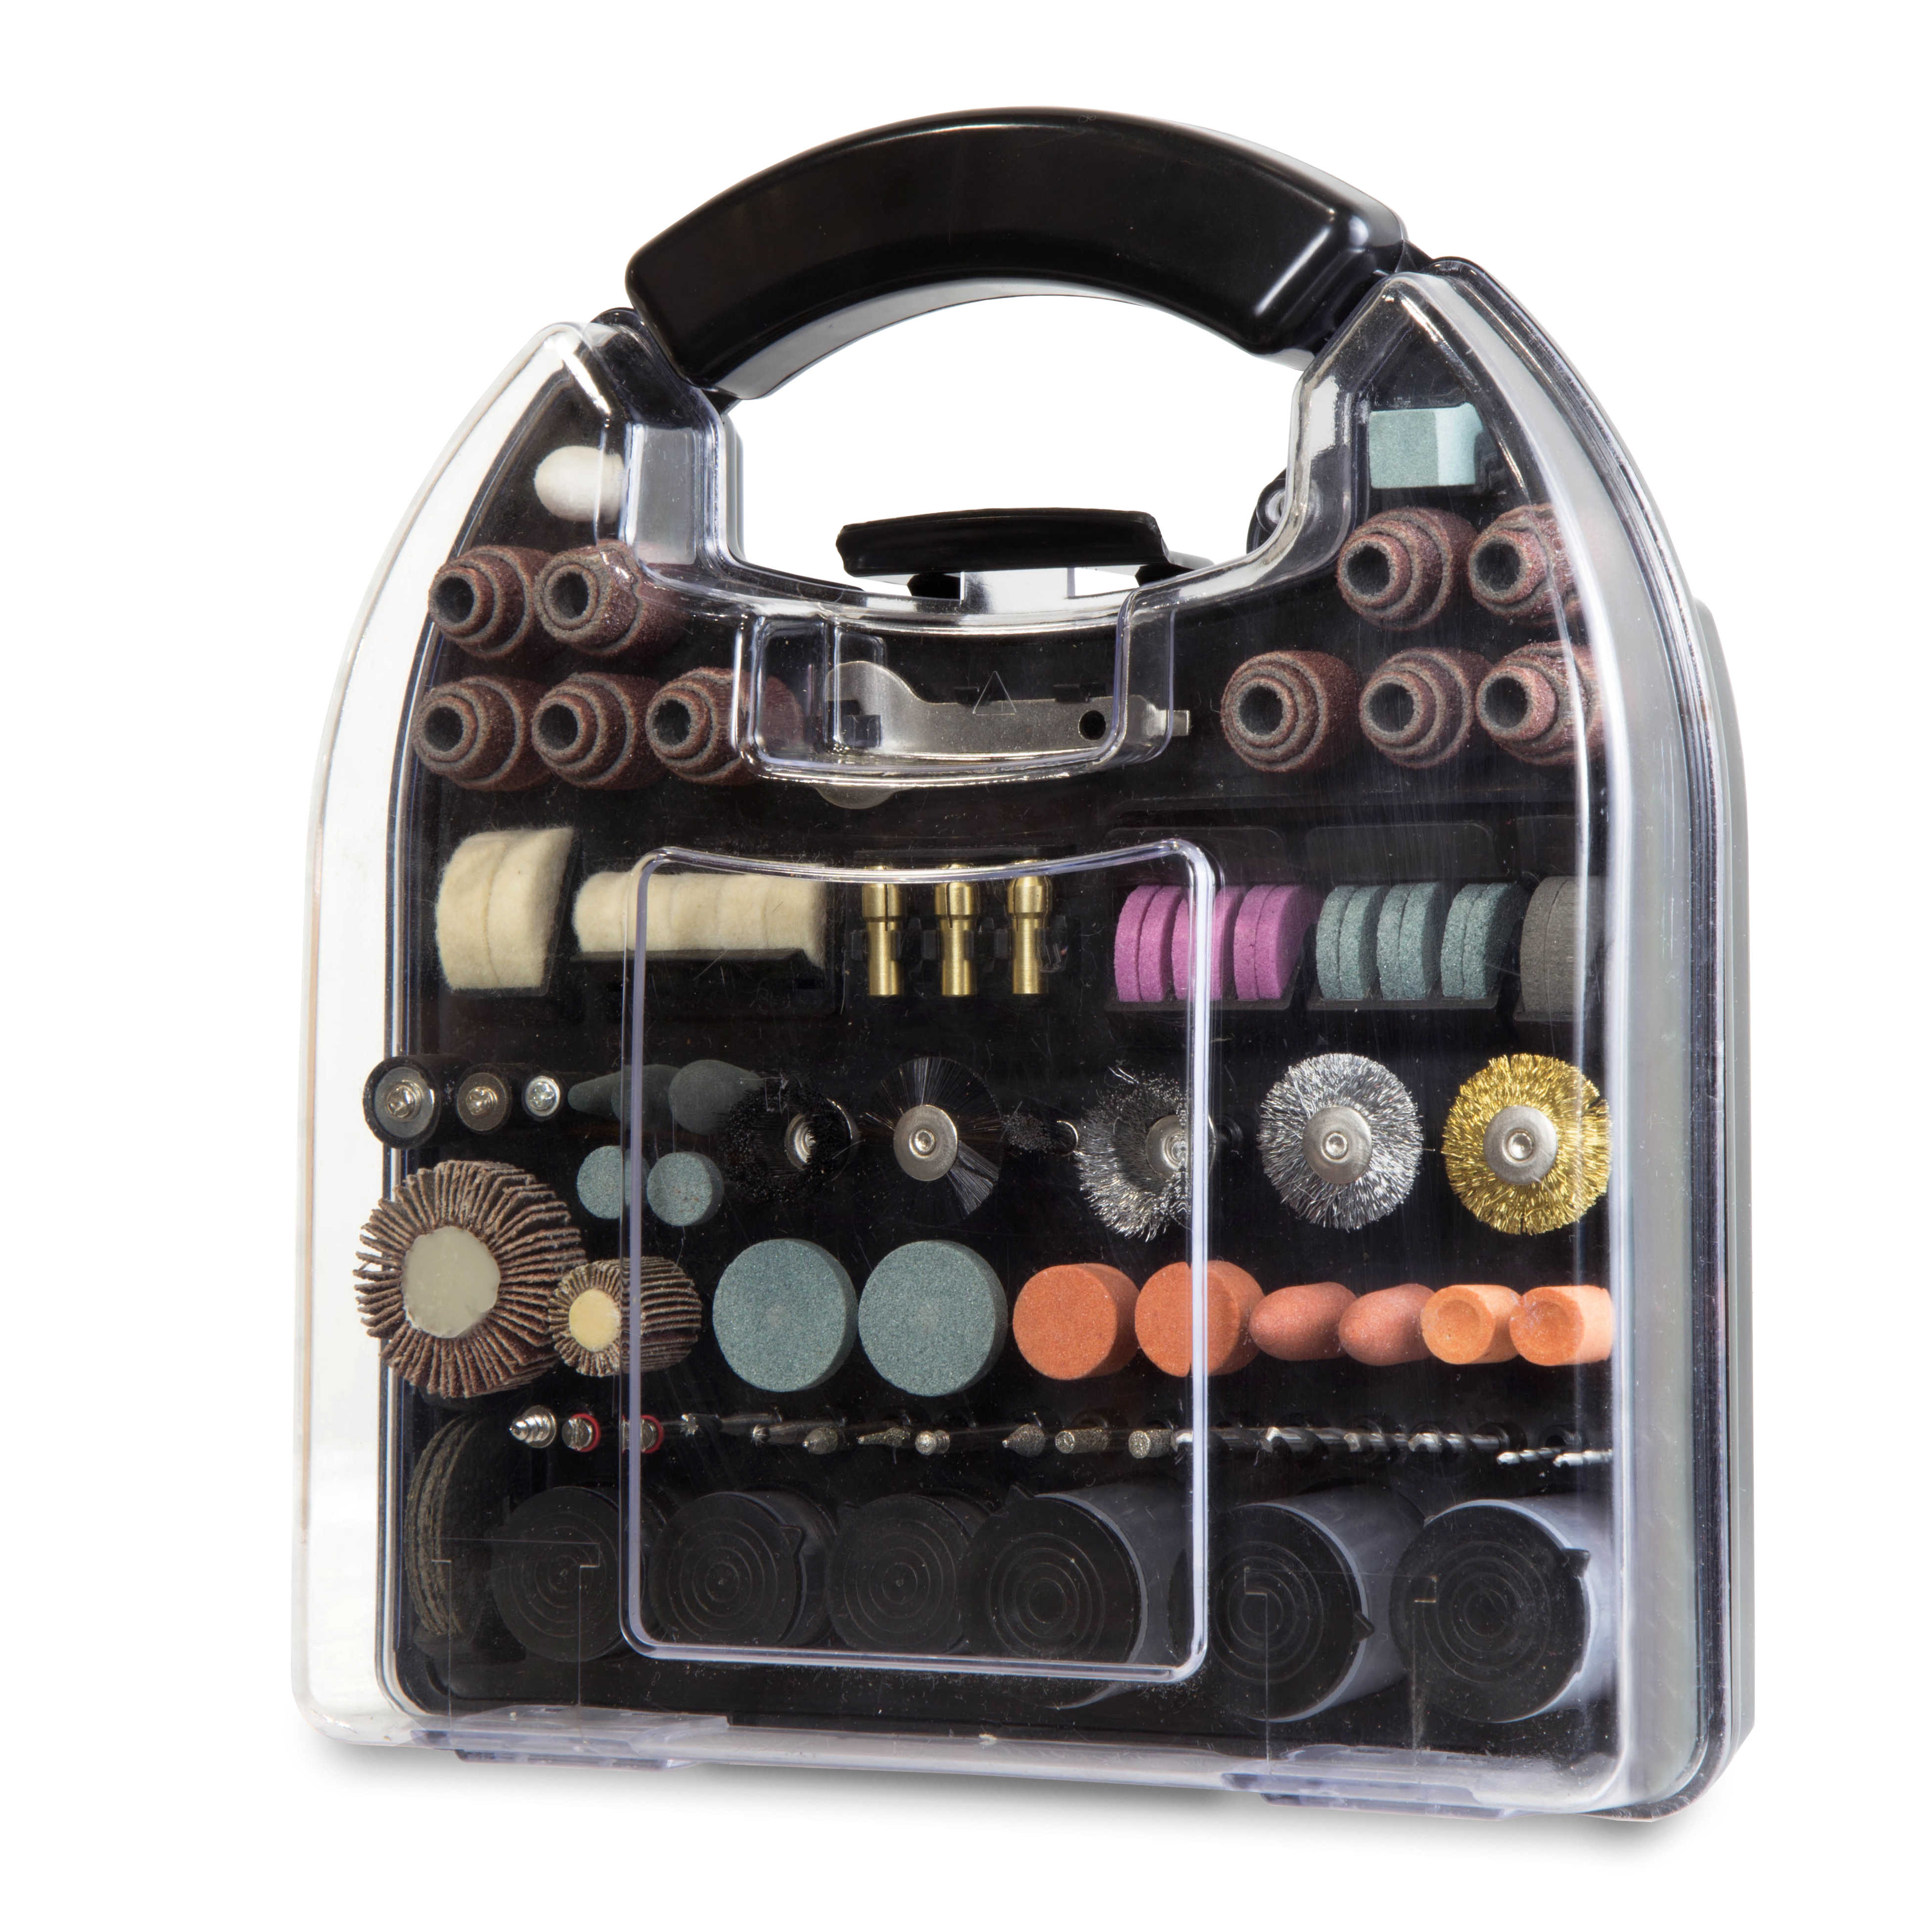 WEN 320-Piece Rotary Tool Accessory Kit with Carrying Case